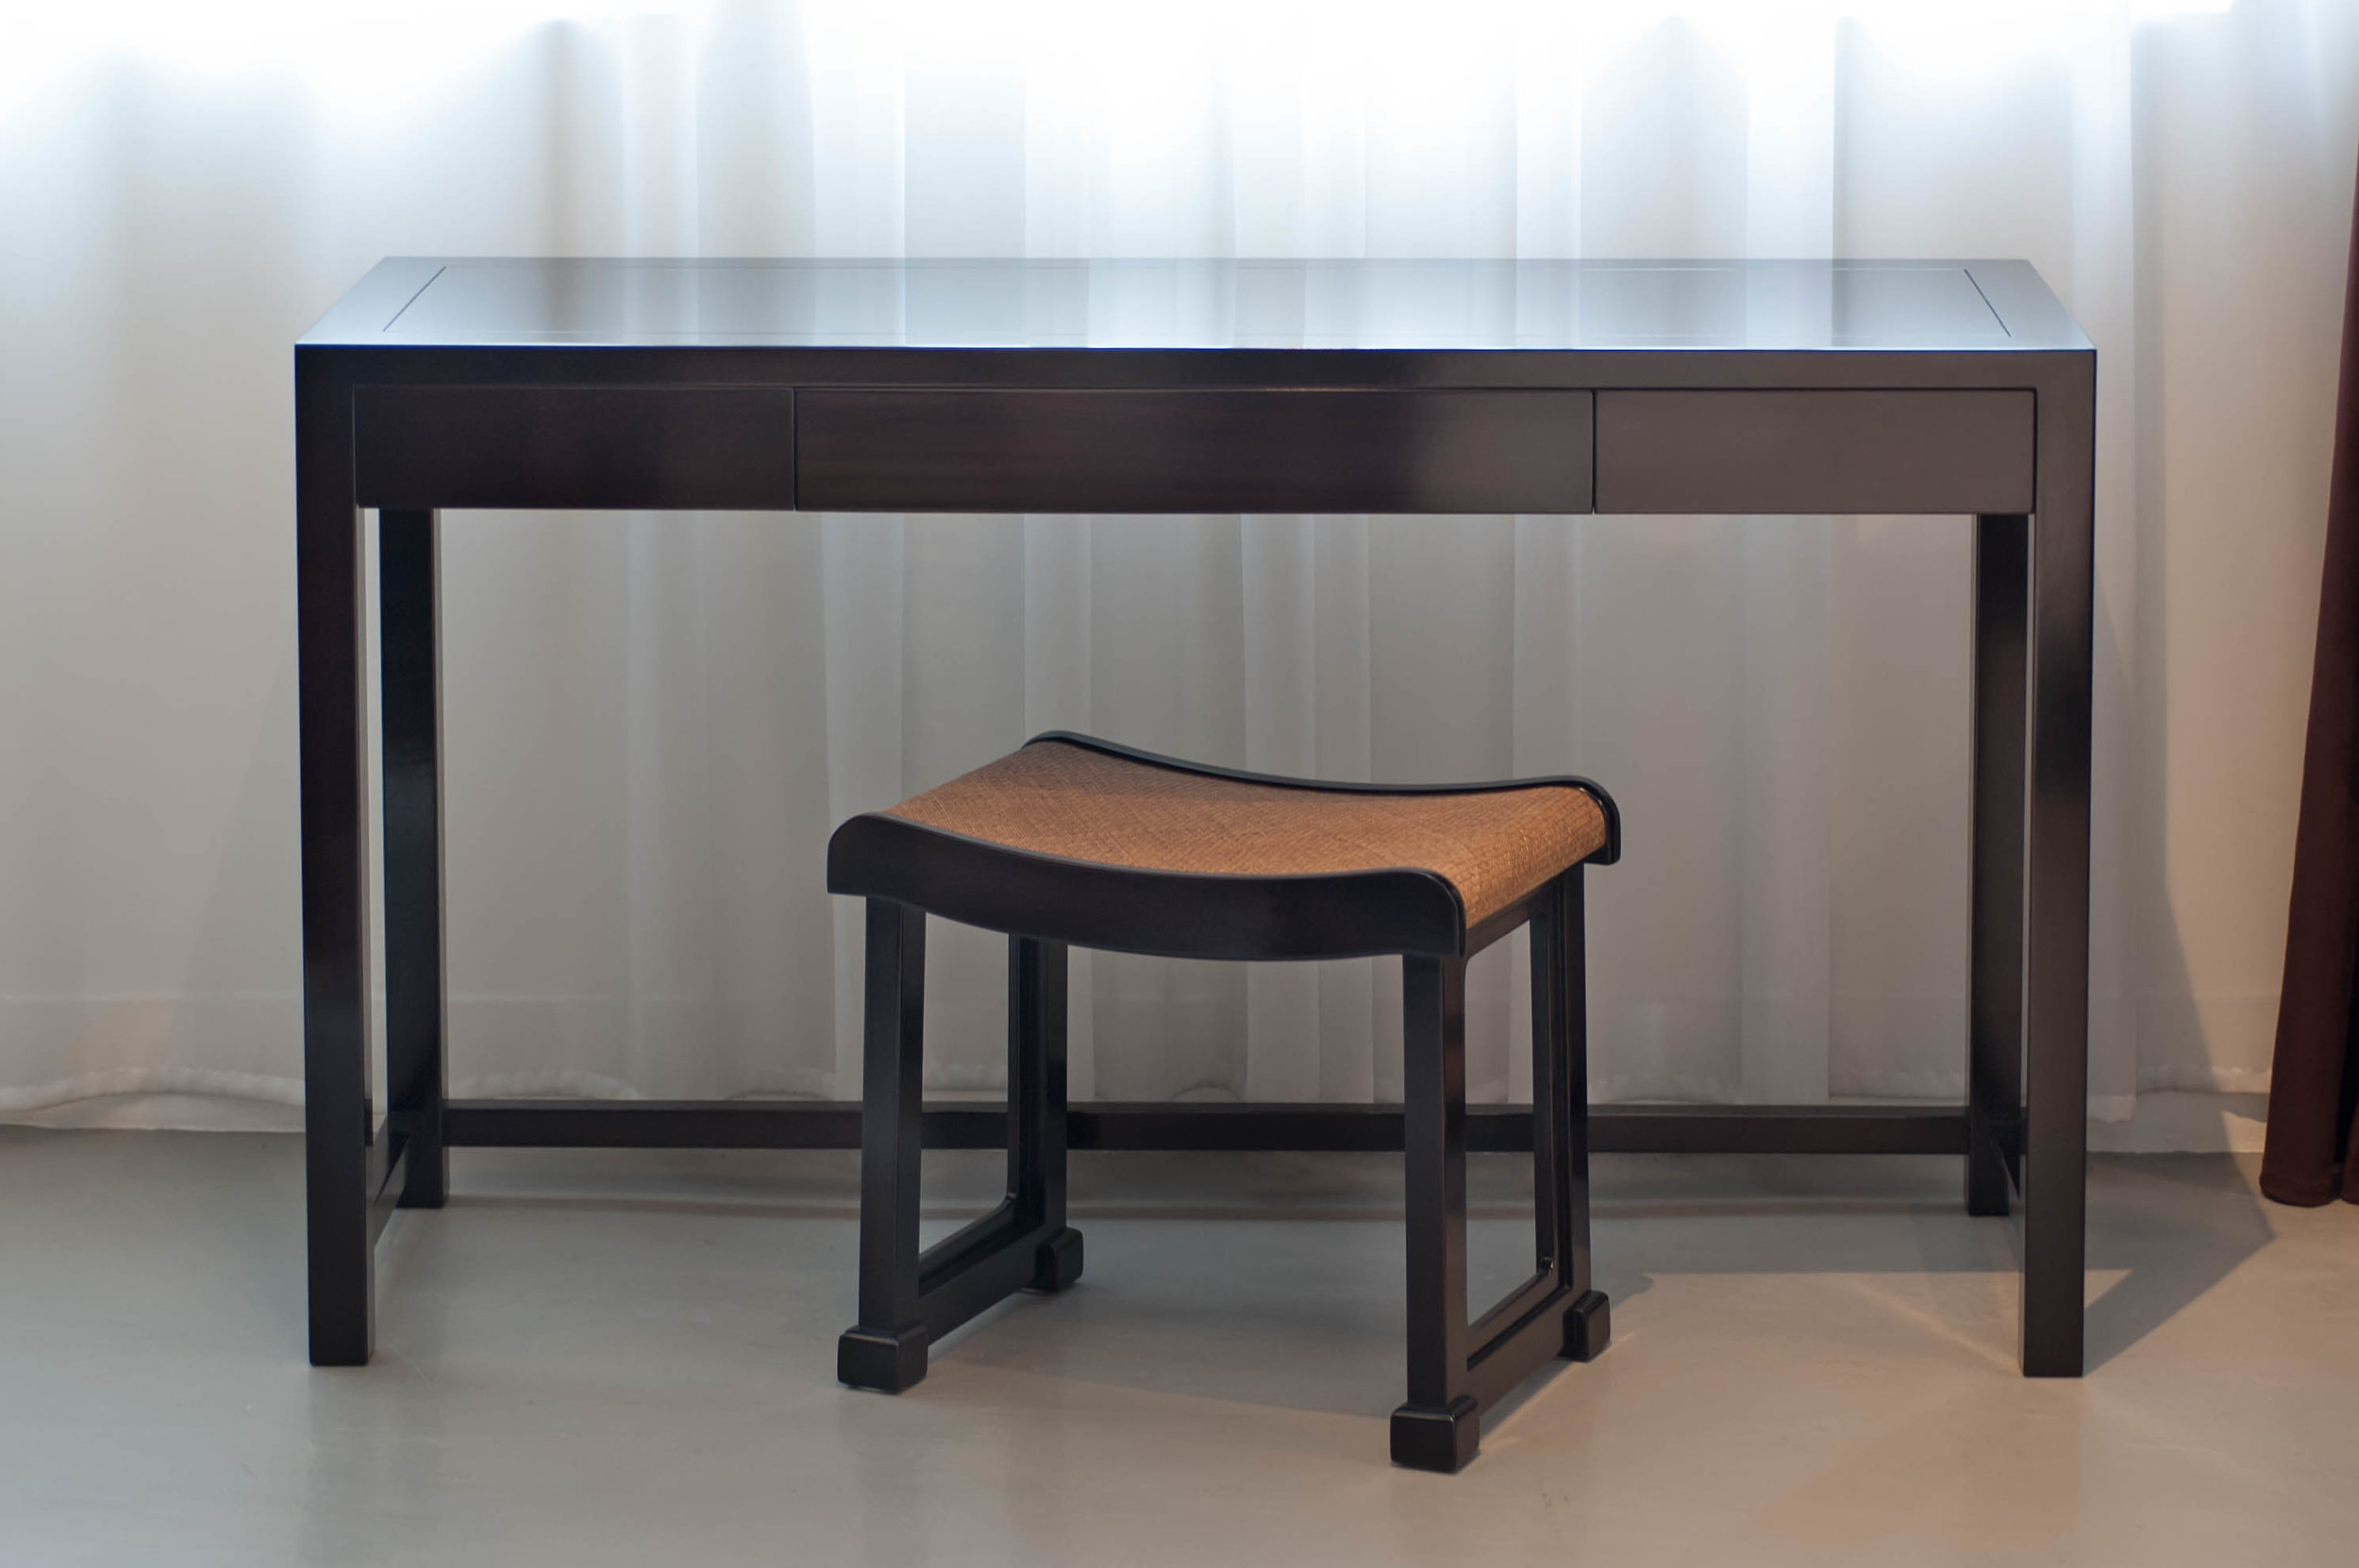 ....modern chinese style furniture | table and stool..现代中式家具 | 台与凳子....